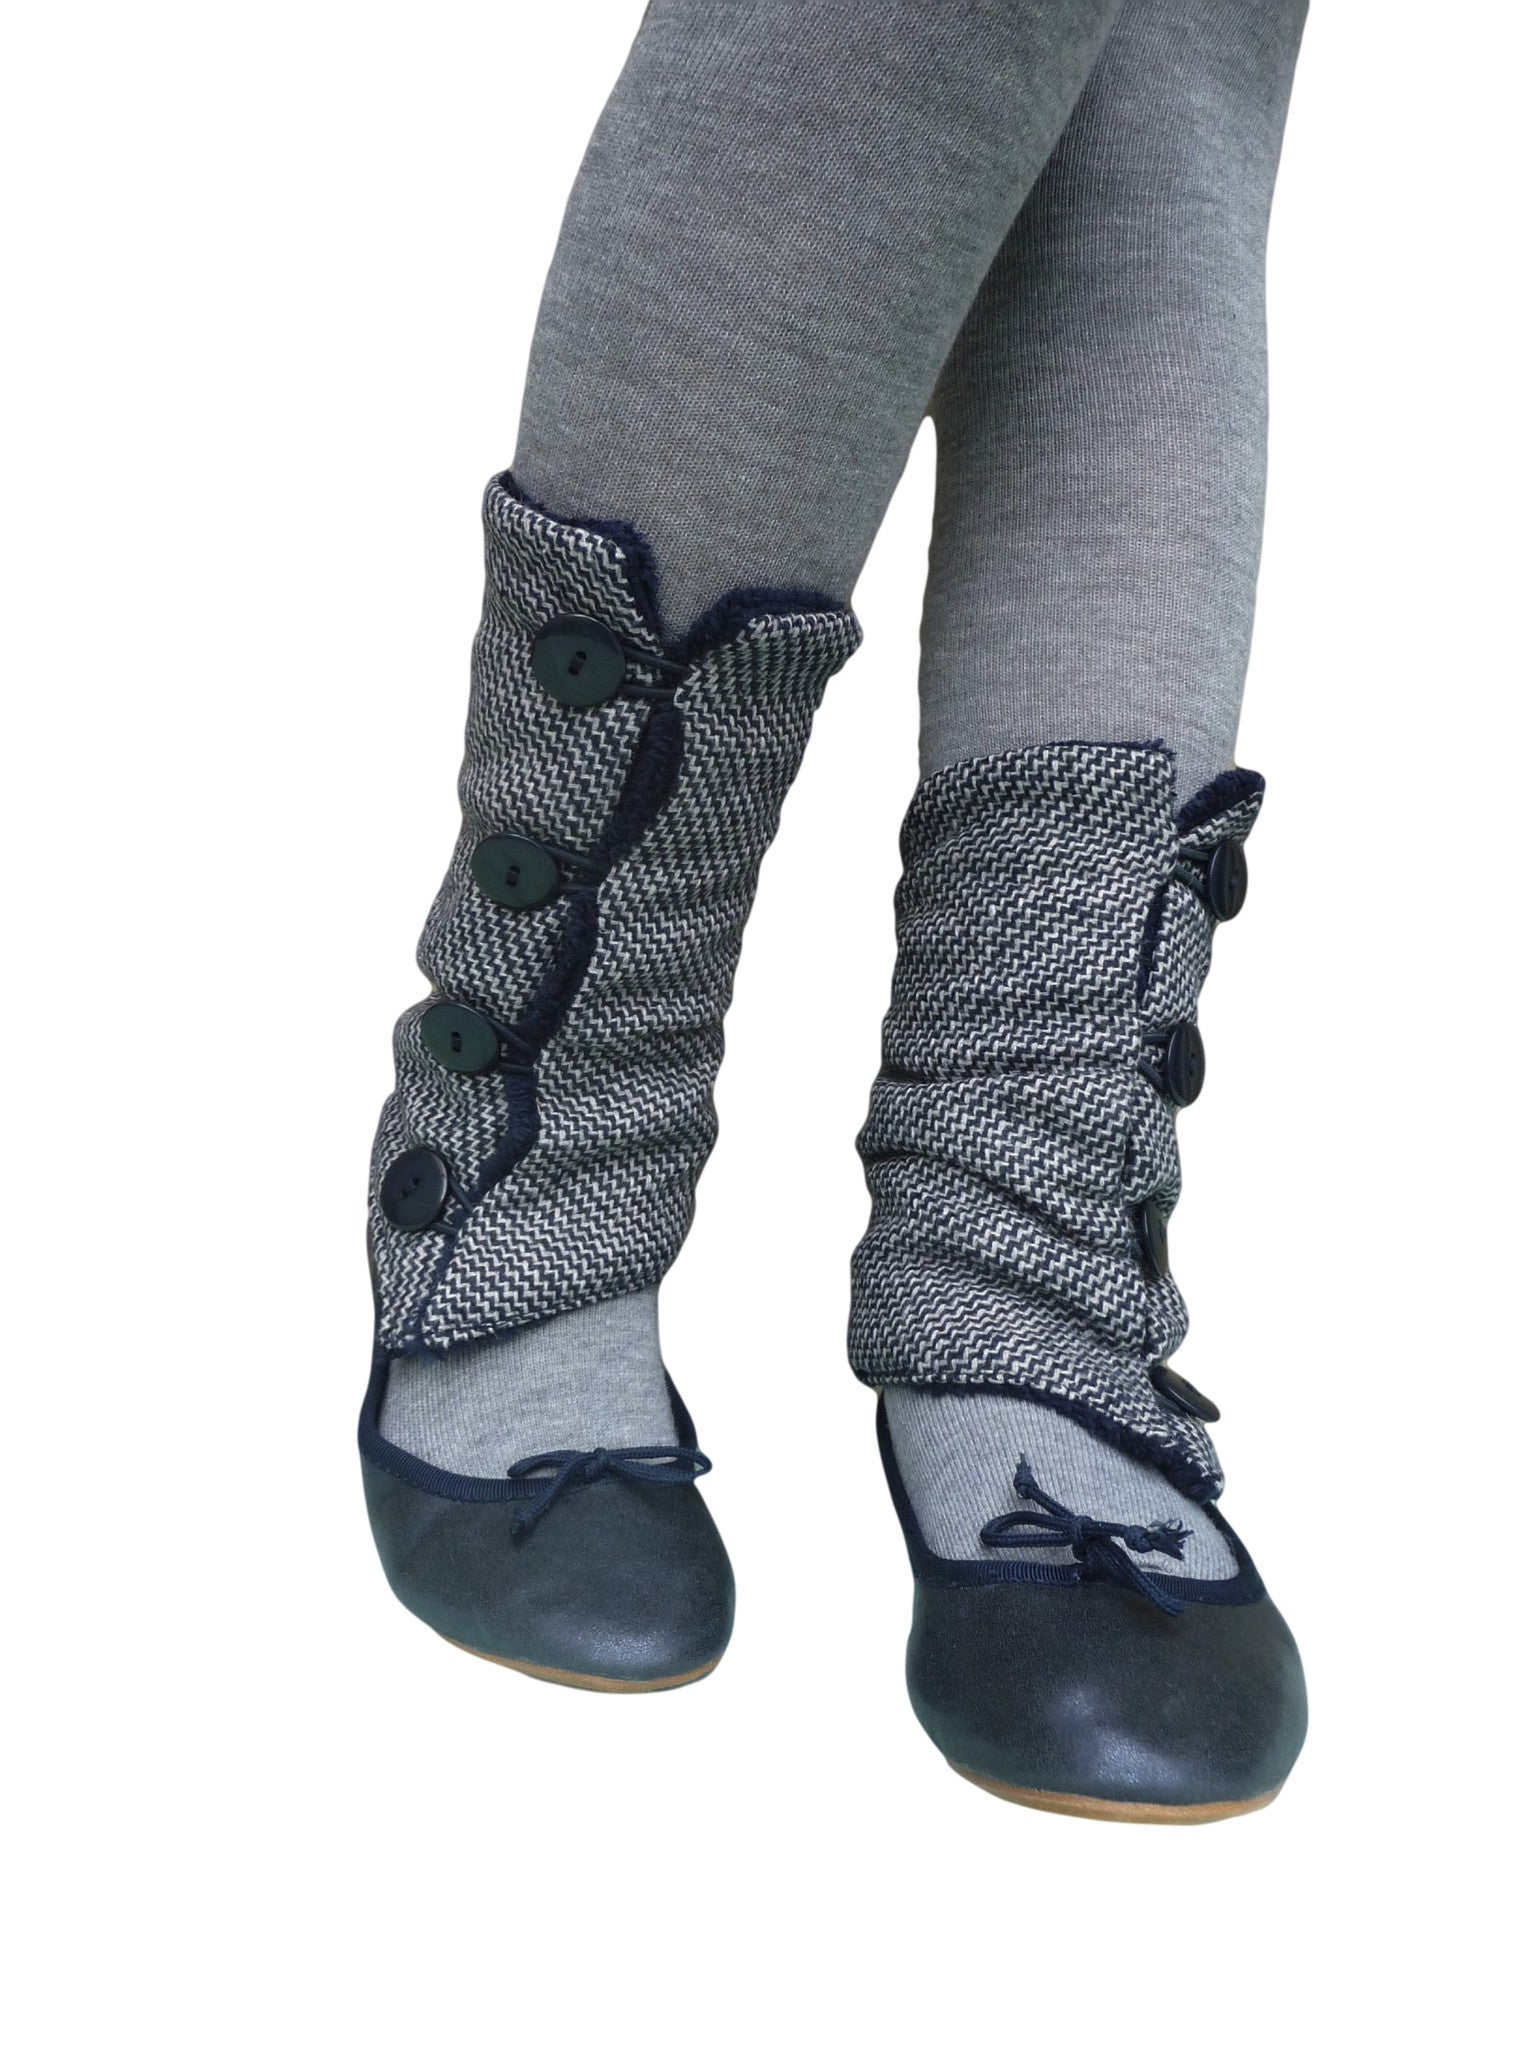 Blue Tweed Leg Warmers